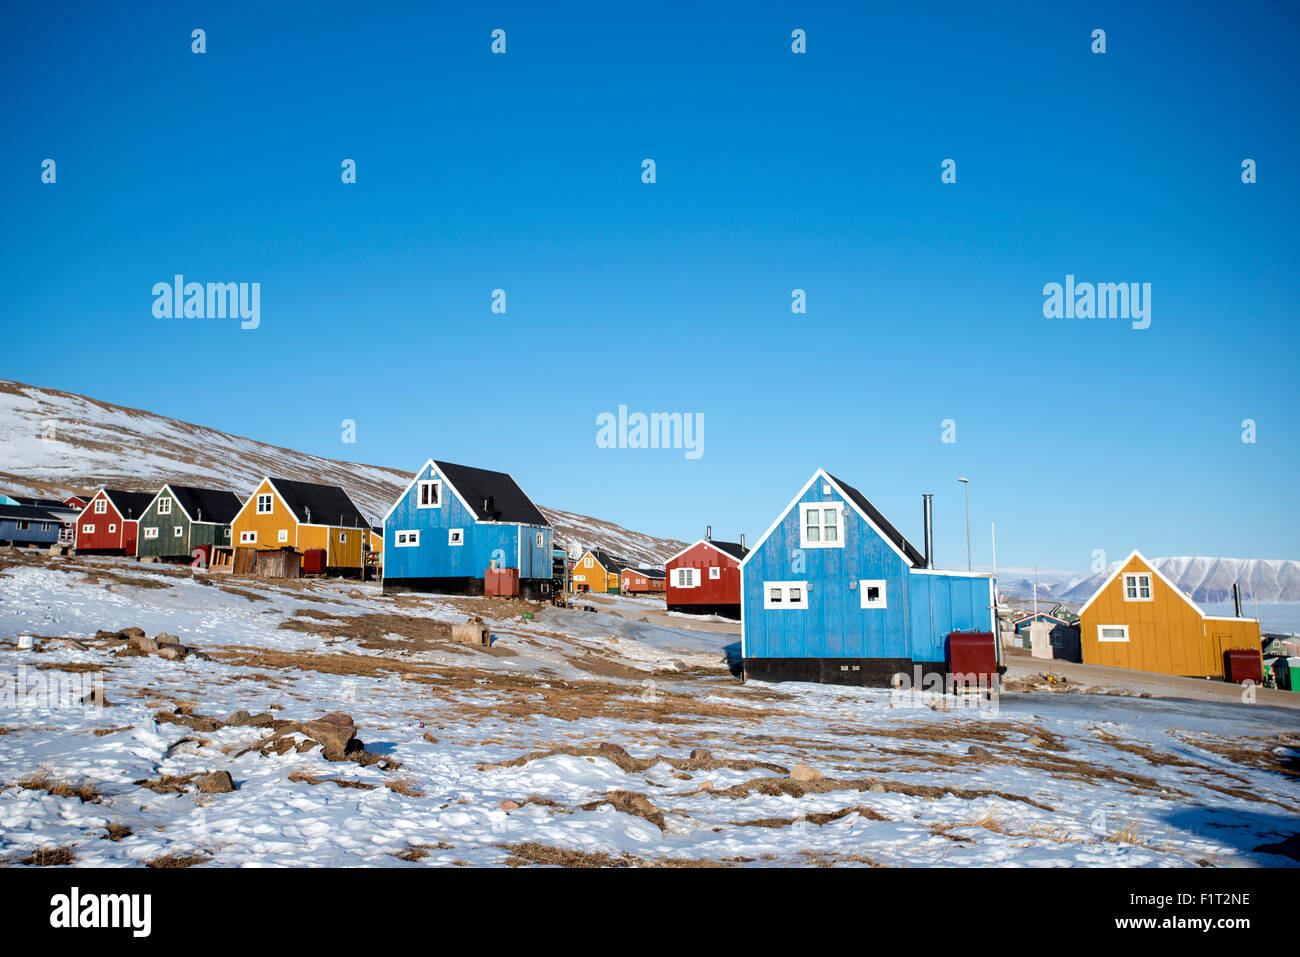 Colourful wooden houses in the village of Qaanaaq, one of the most northerly human settlements on the planet, Greenland, - Stock Image